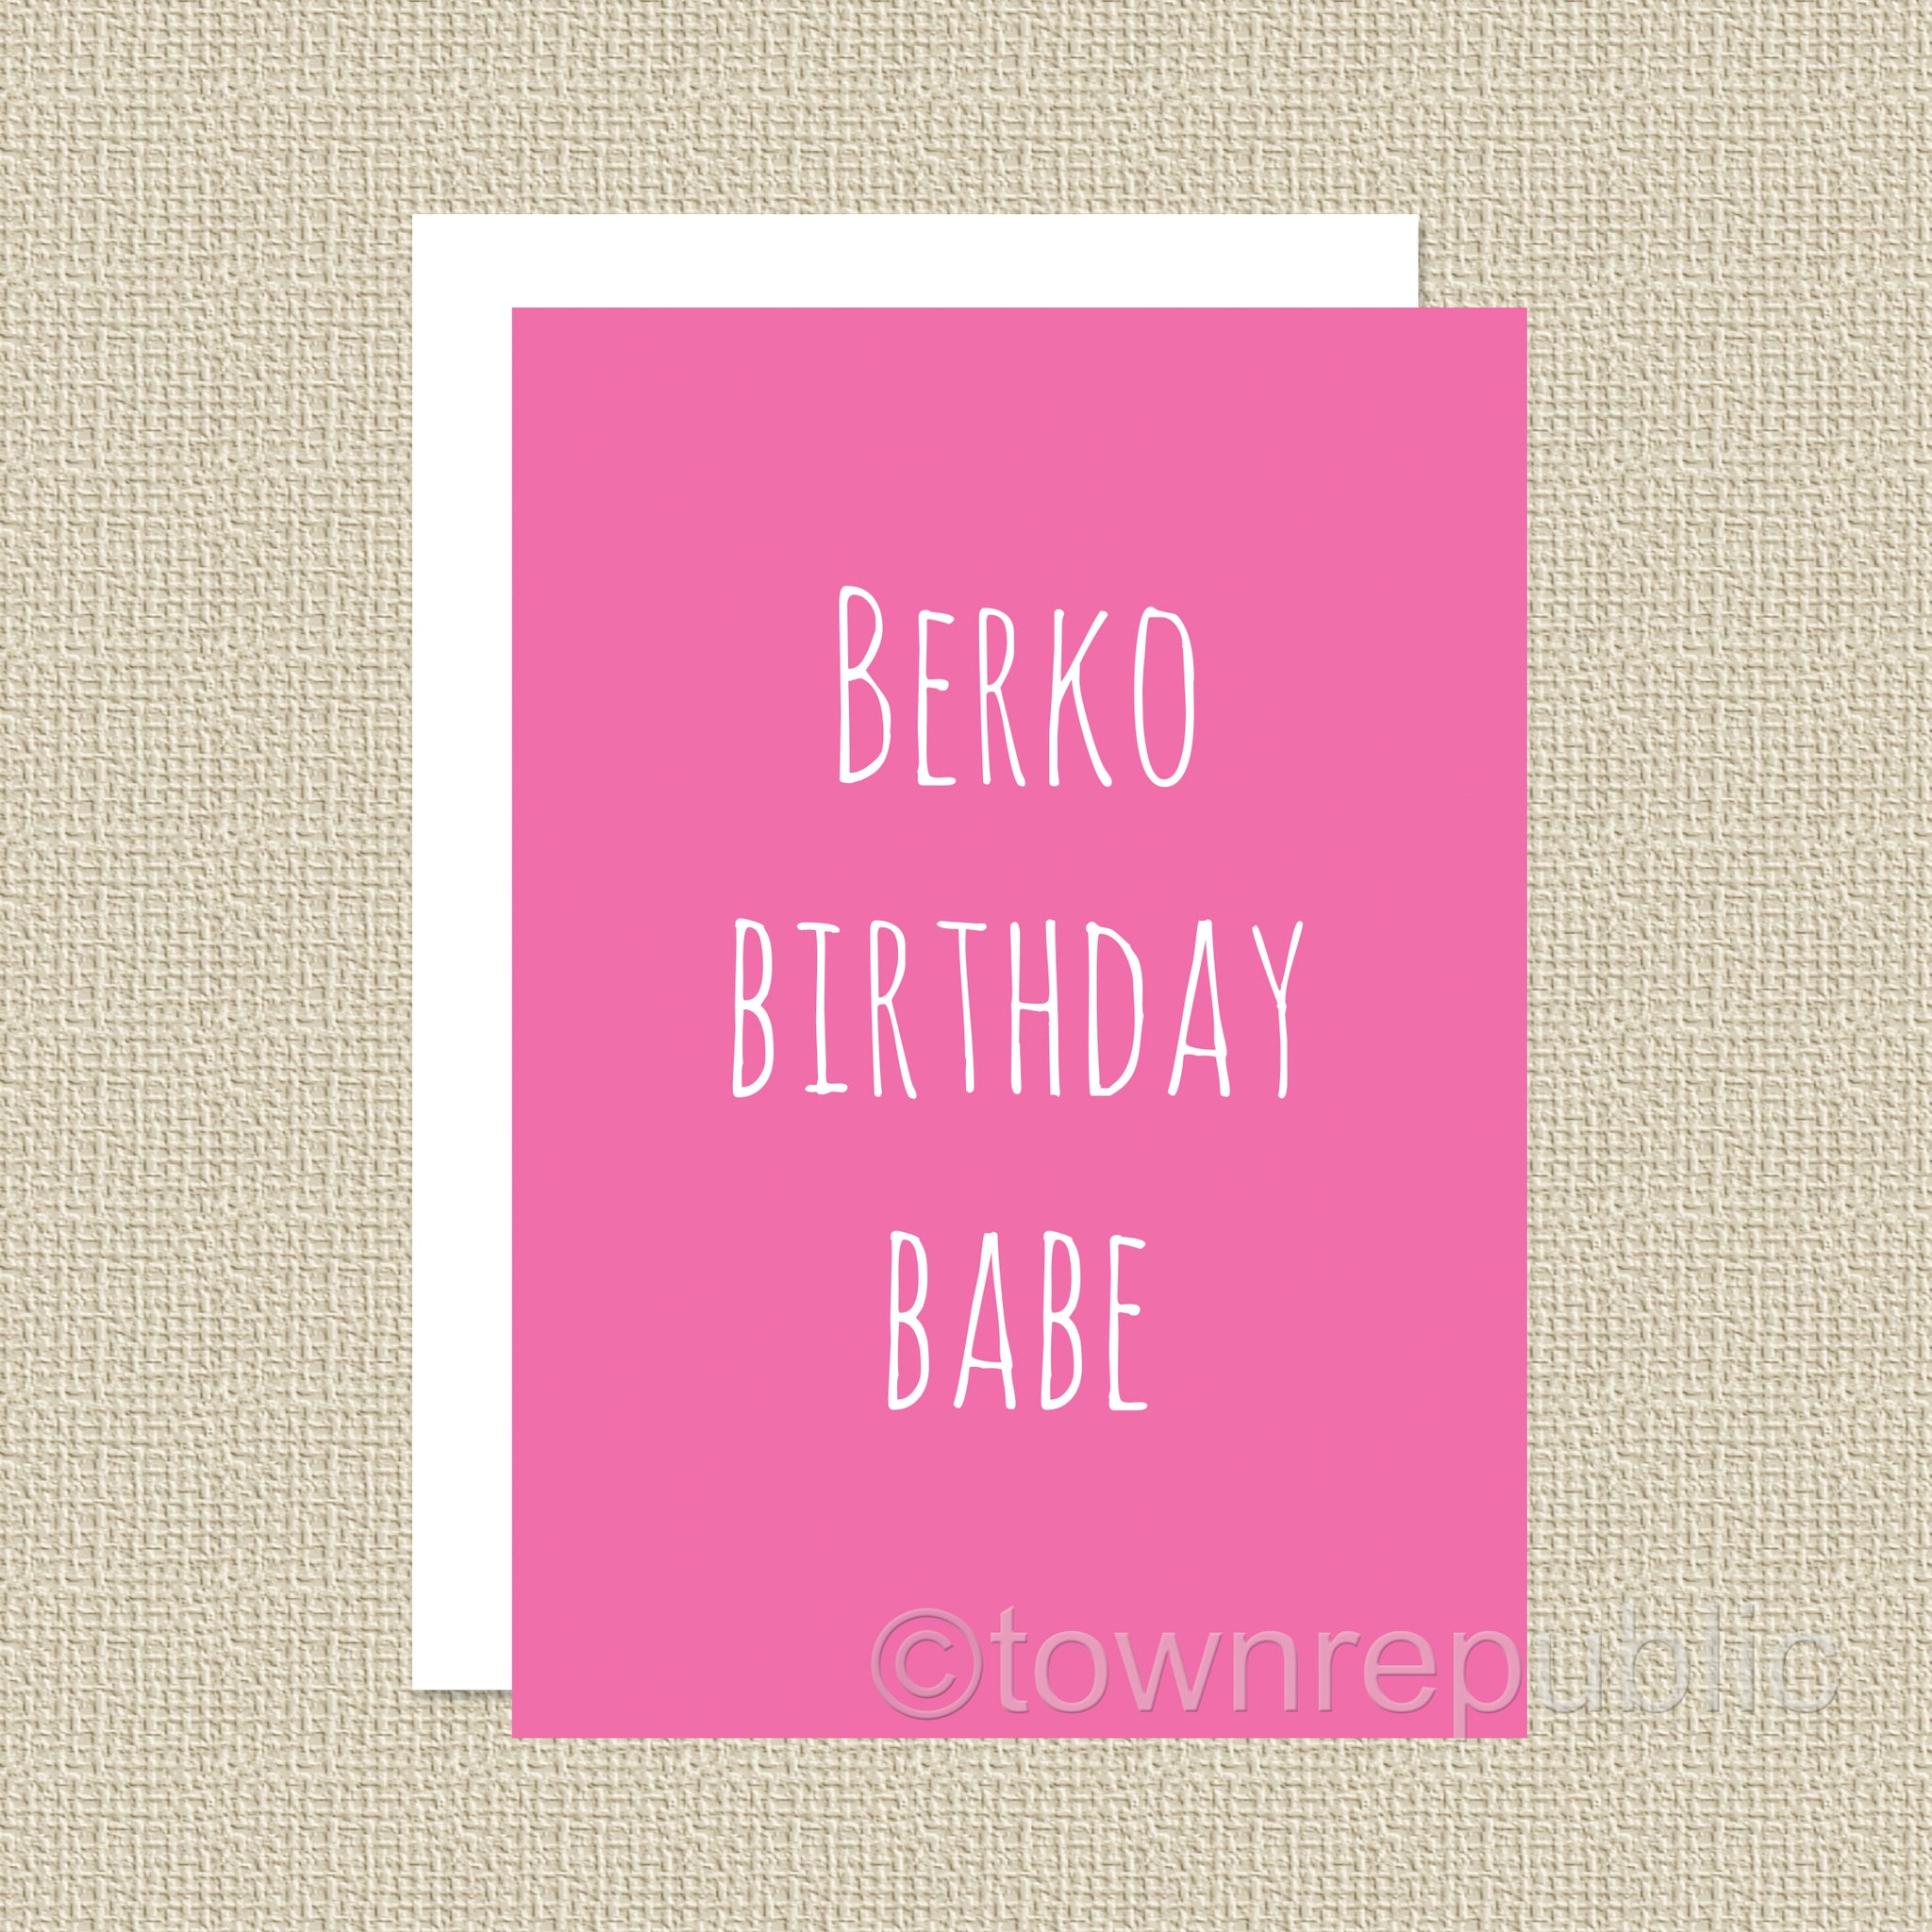 Greetings Card - Berko Birthday Babe